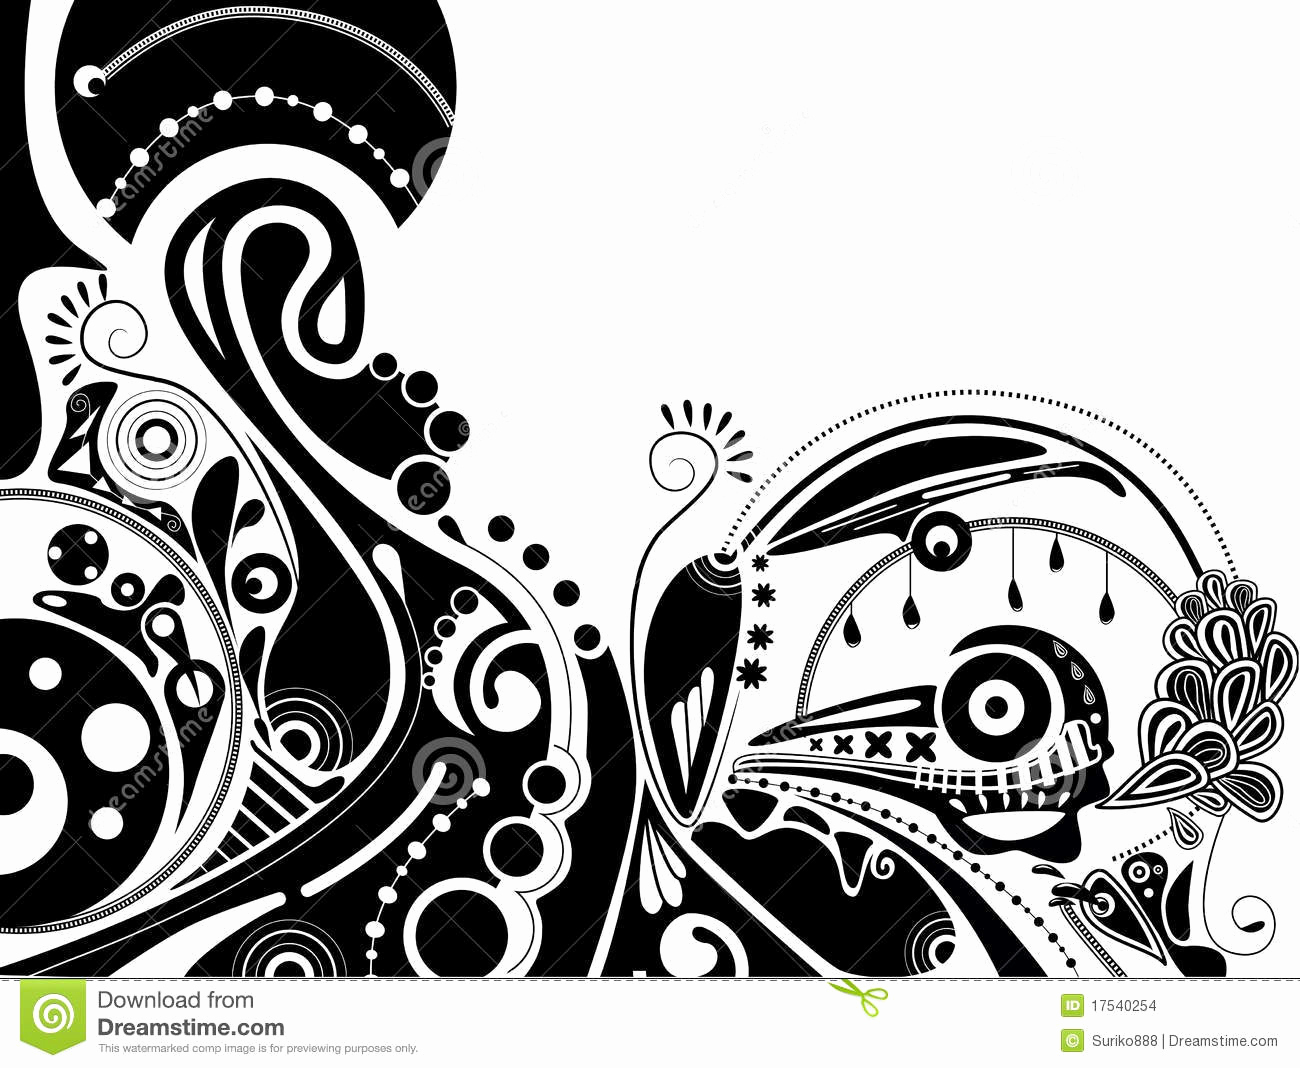 Black and White Illustration Inspirational Black and White Psychedelic Illustration Stock Vector